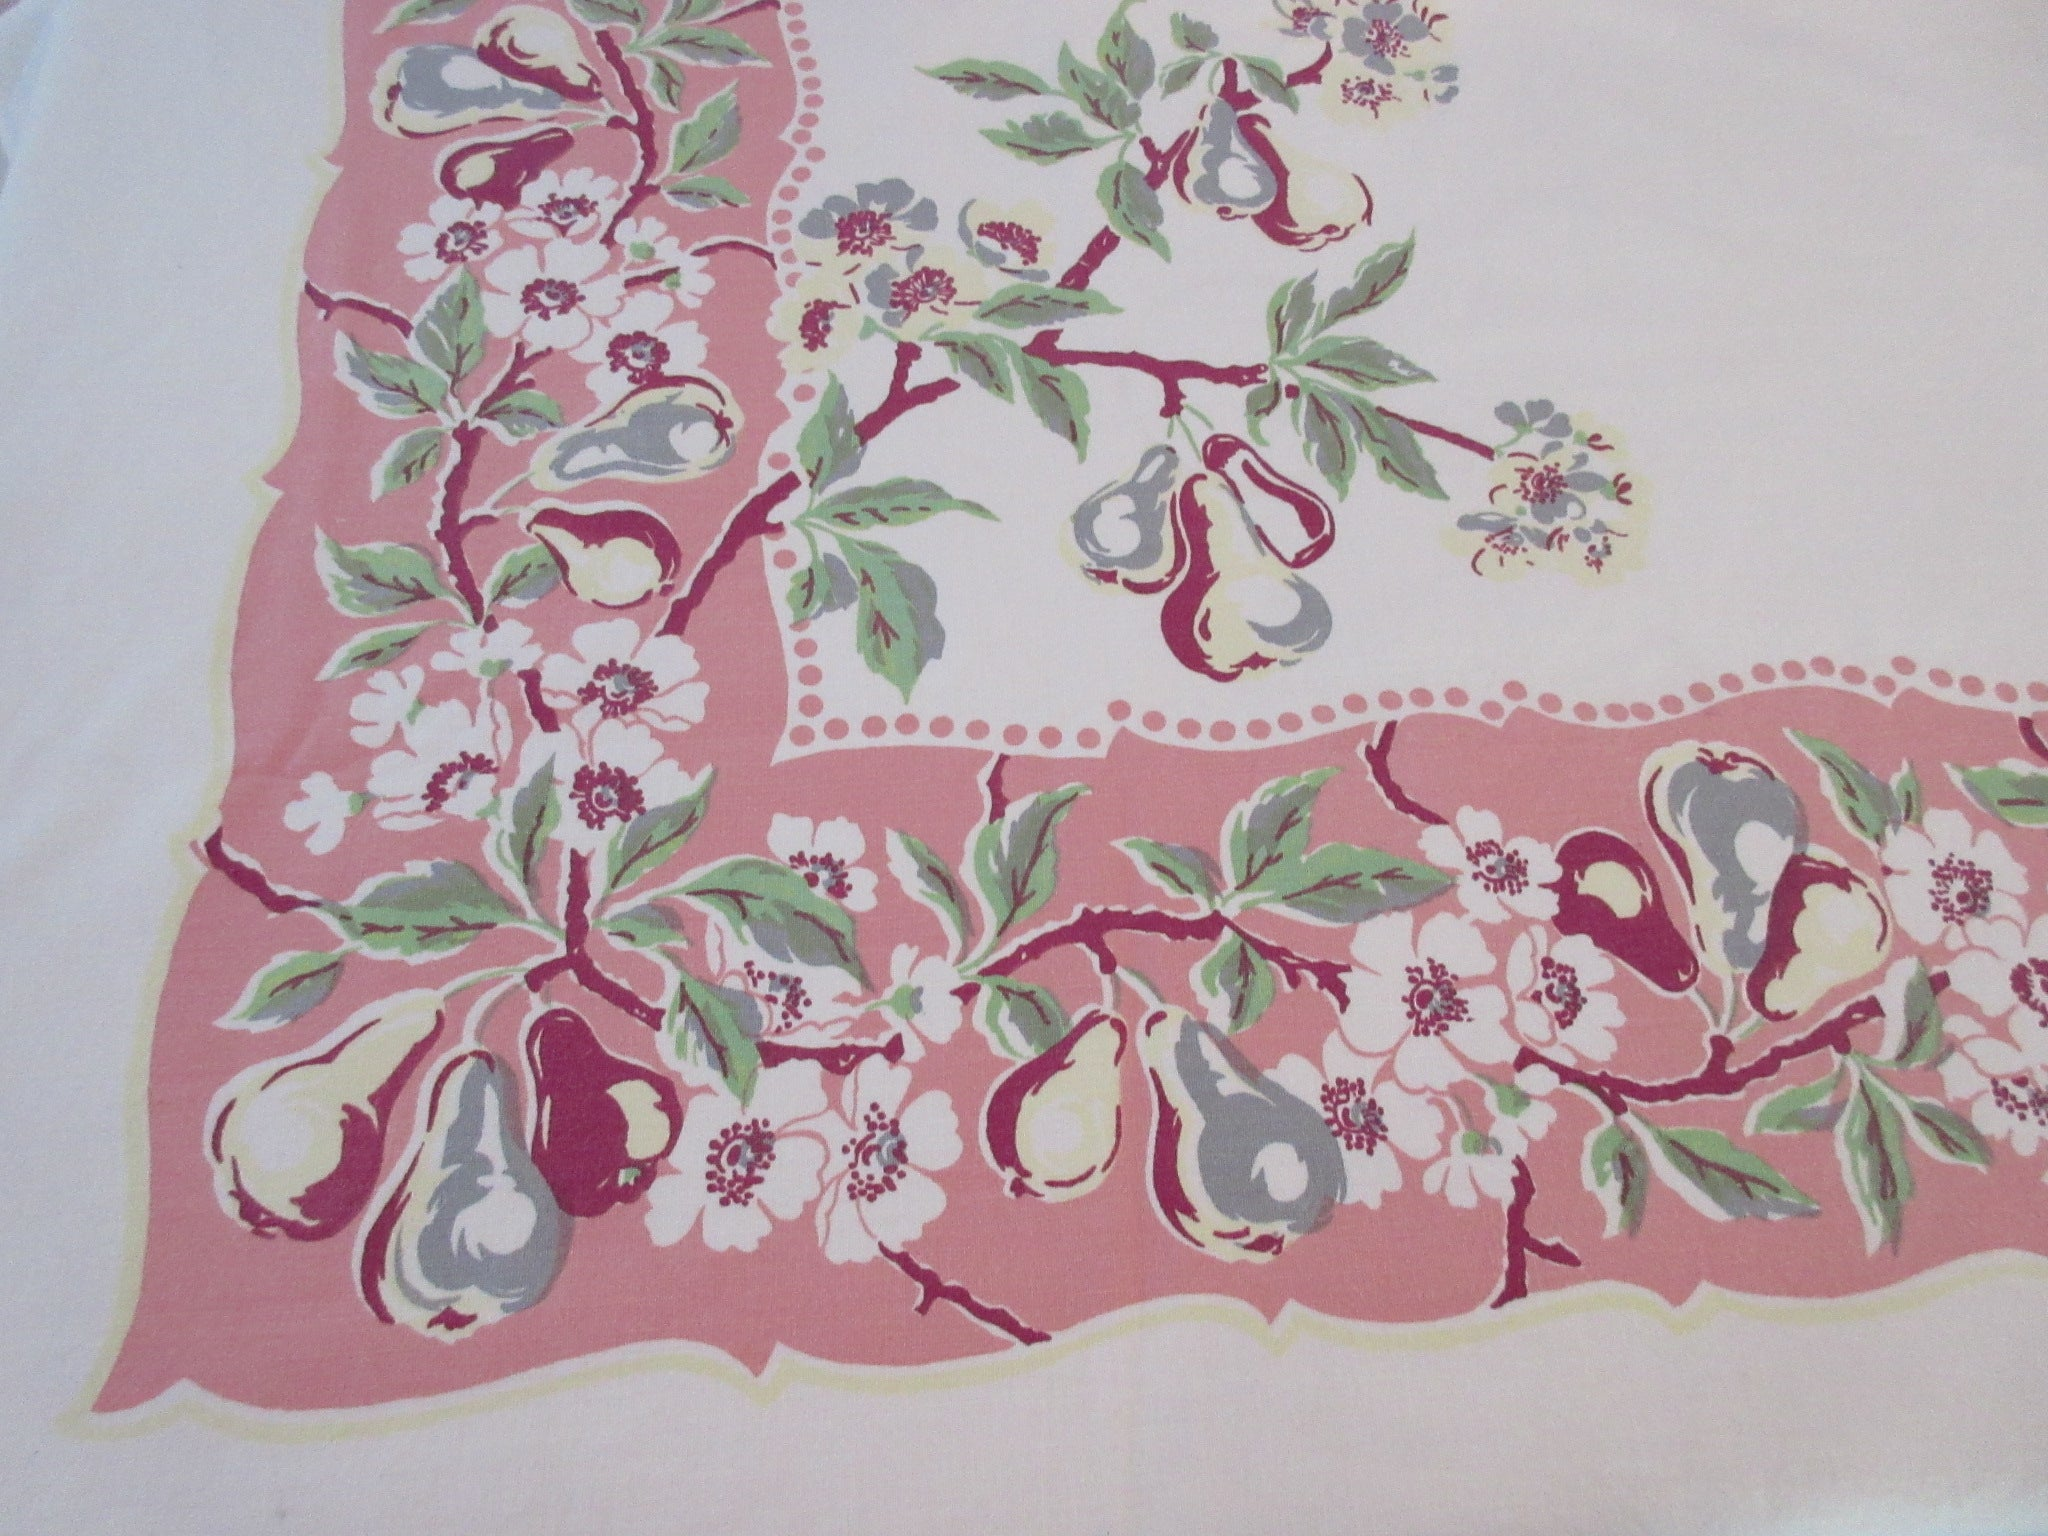 Large Heavier Pears on Pink Fruit Vintage Printed Tablecloth (72 X 54)